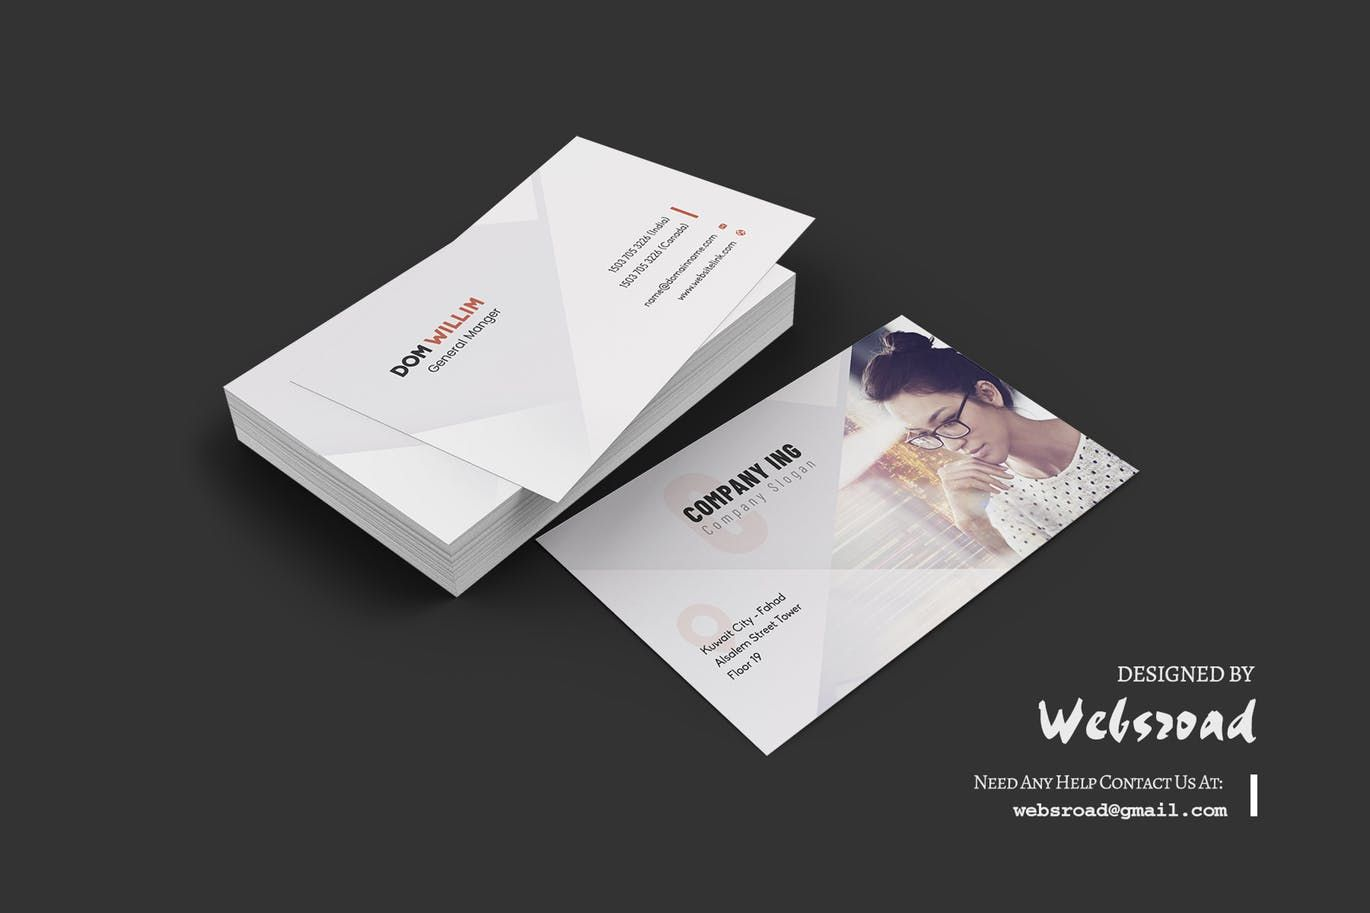 Business Card Template AI  EPS  PSD   Business Card Templates     Business Card Template AI  EPS  PSD